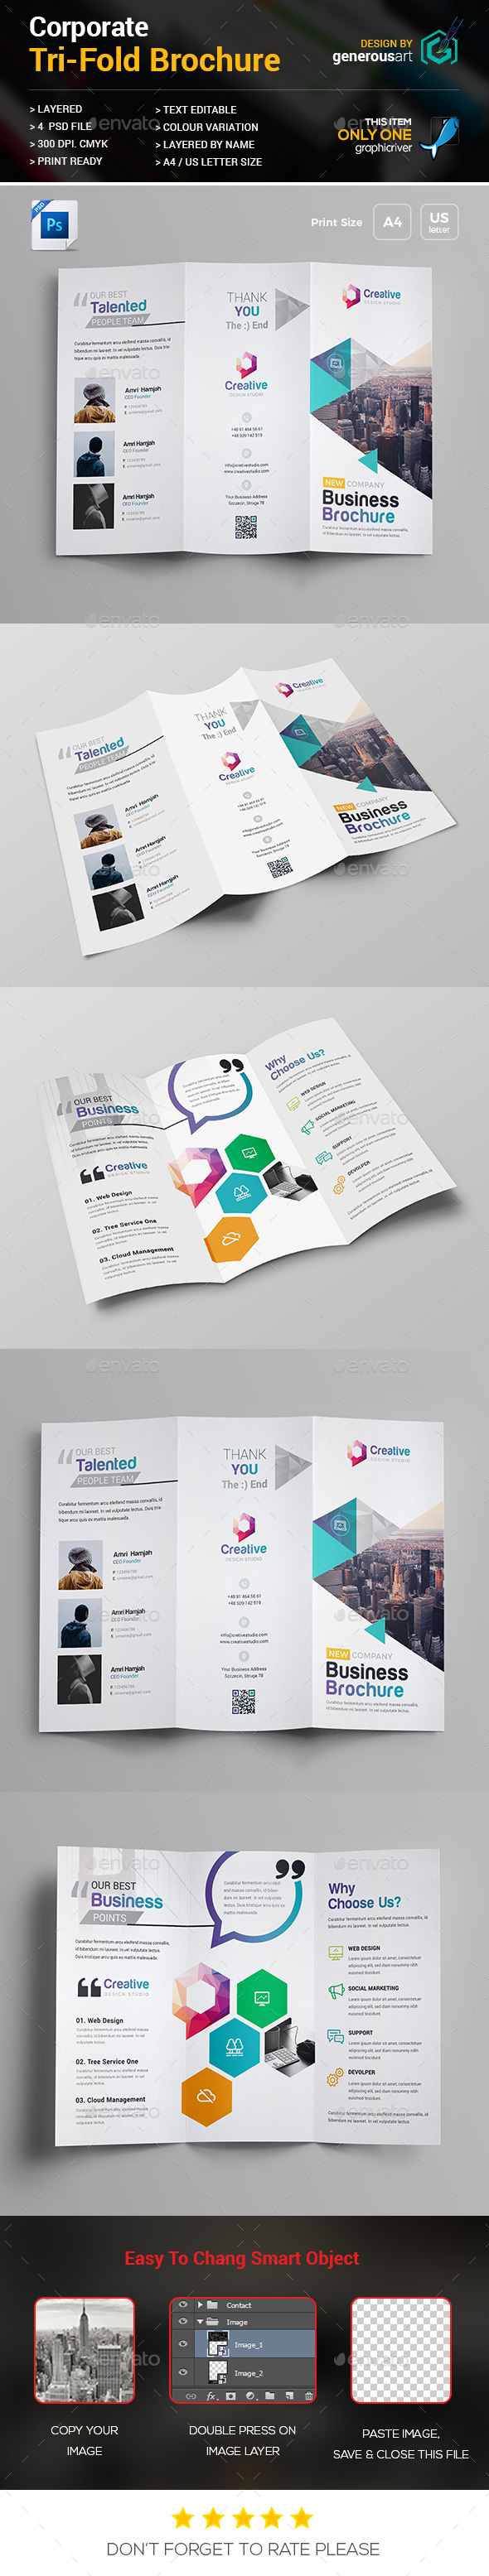 GraphicRiver Tri-Fold Brochure 20628397